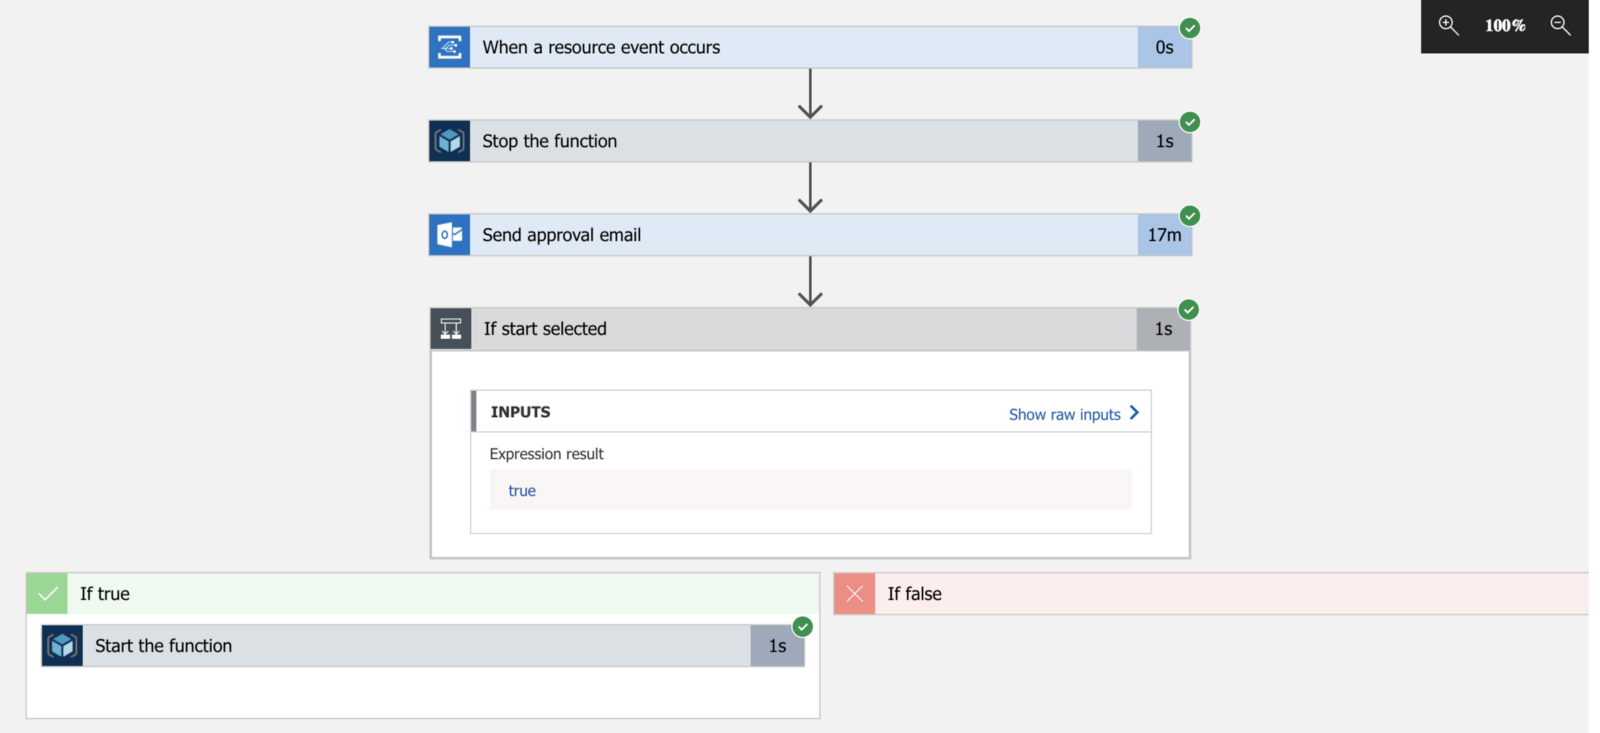 Reliable Event Processing in Azure Functions - By